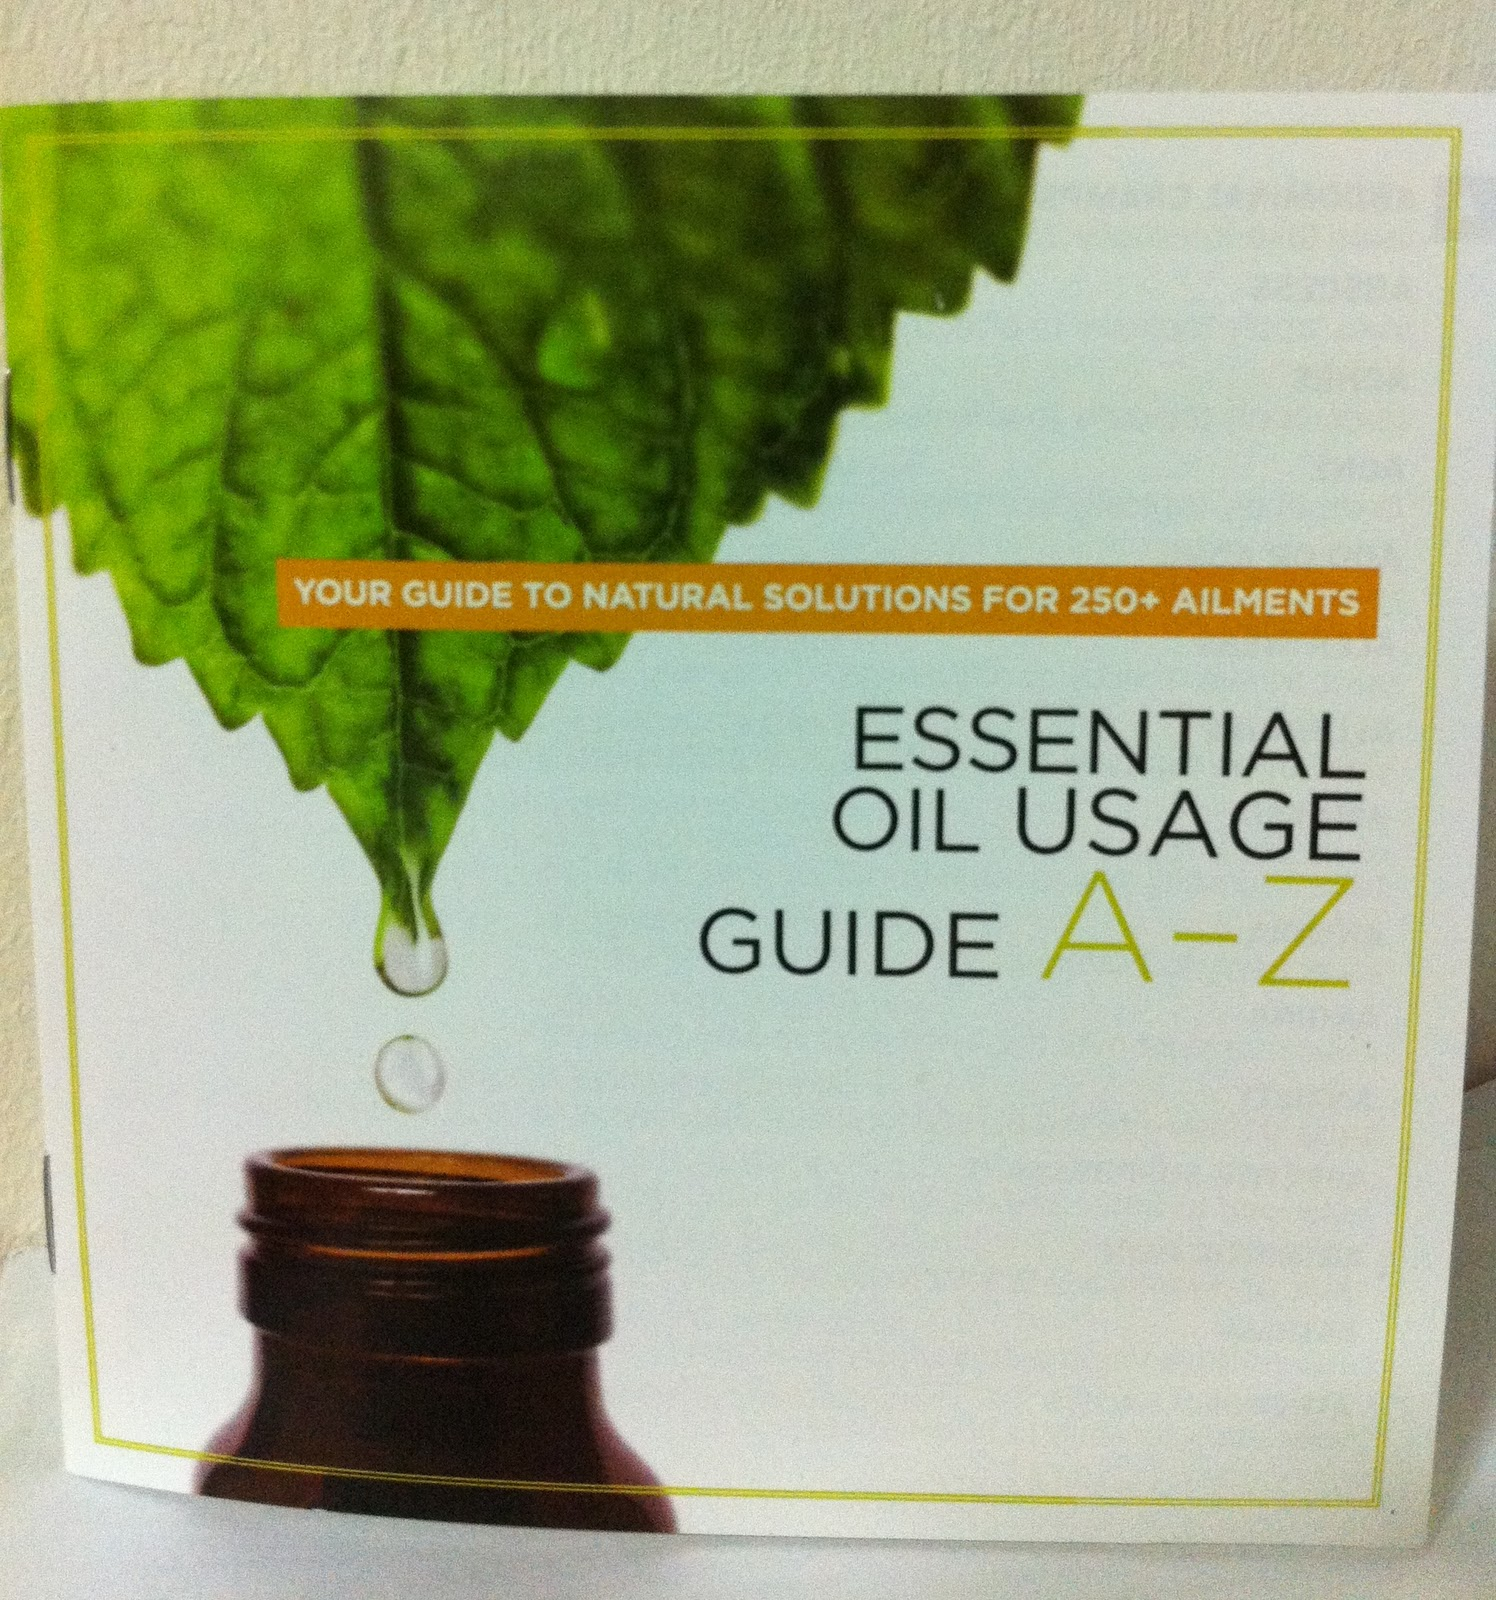 Essential Oils Guide + Best Essential Oils - Dr. Axe